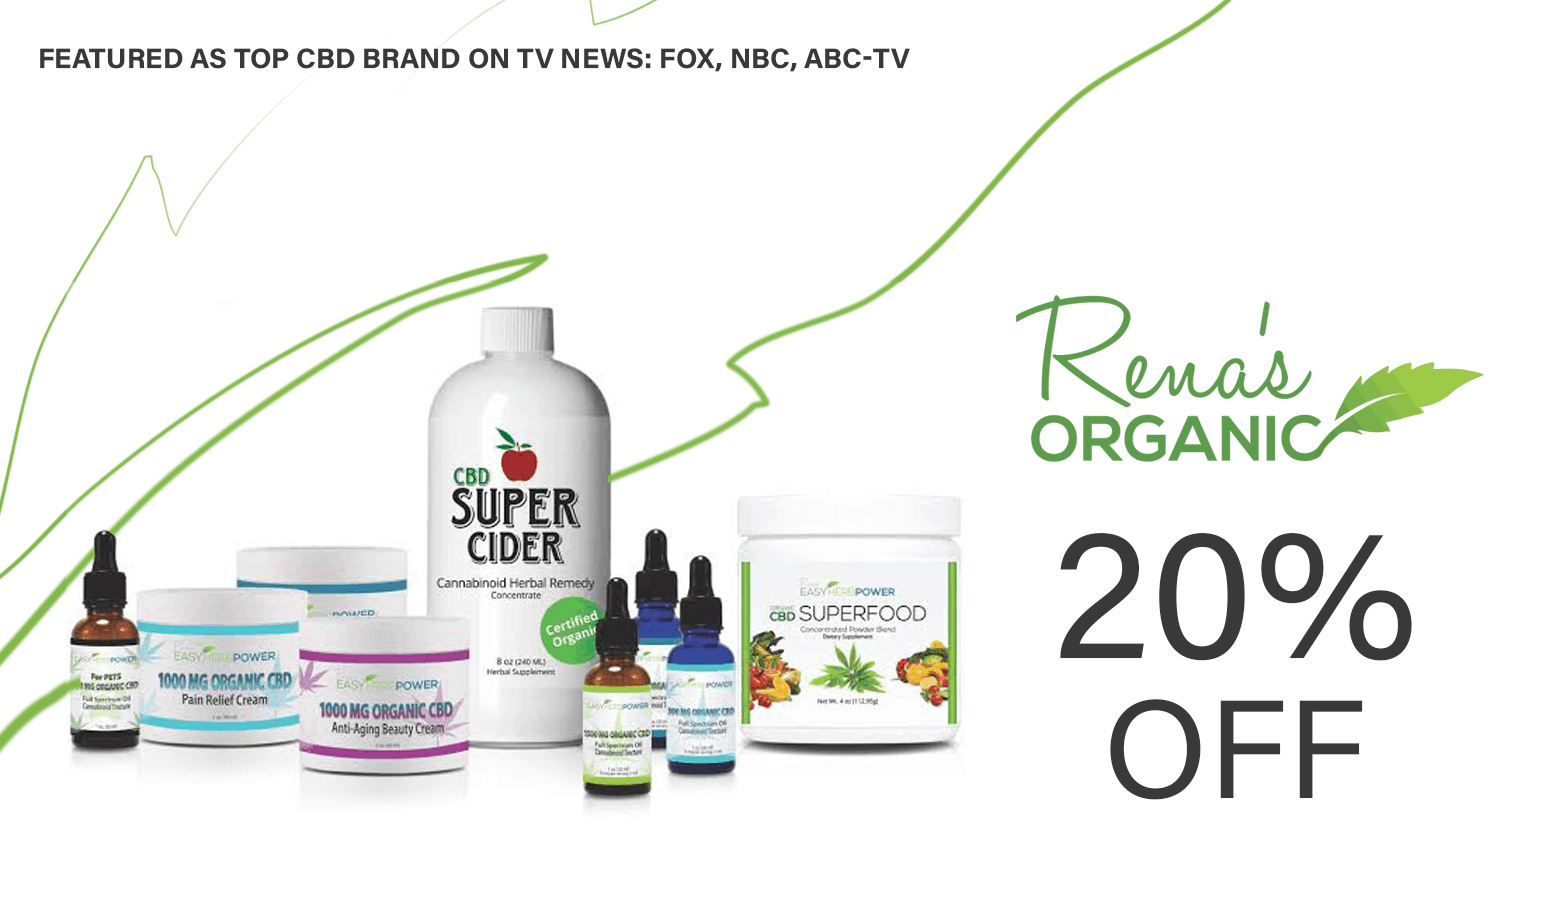 Renas Organic 20 percent off coupon - save on cannabis